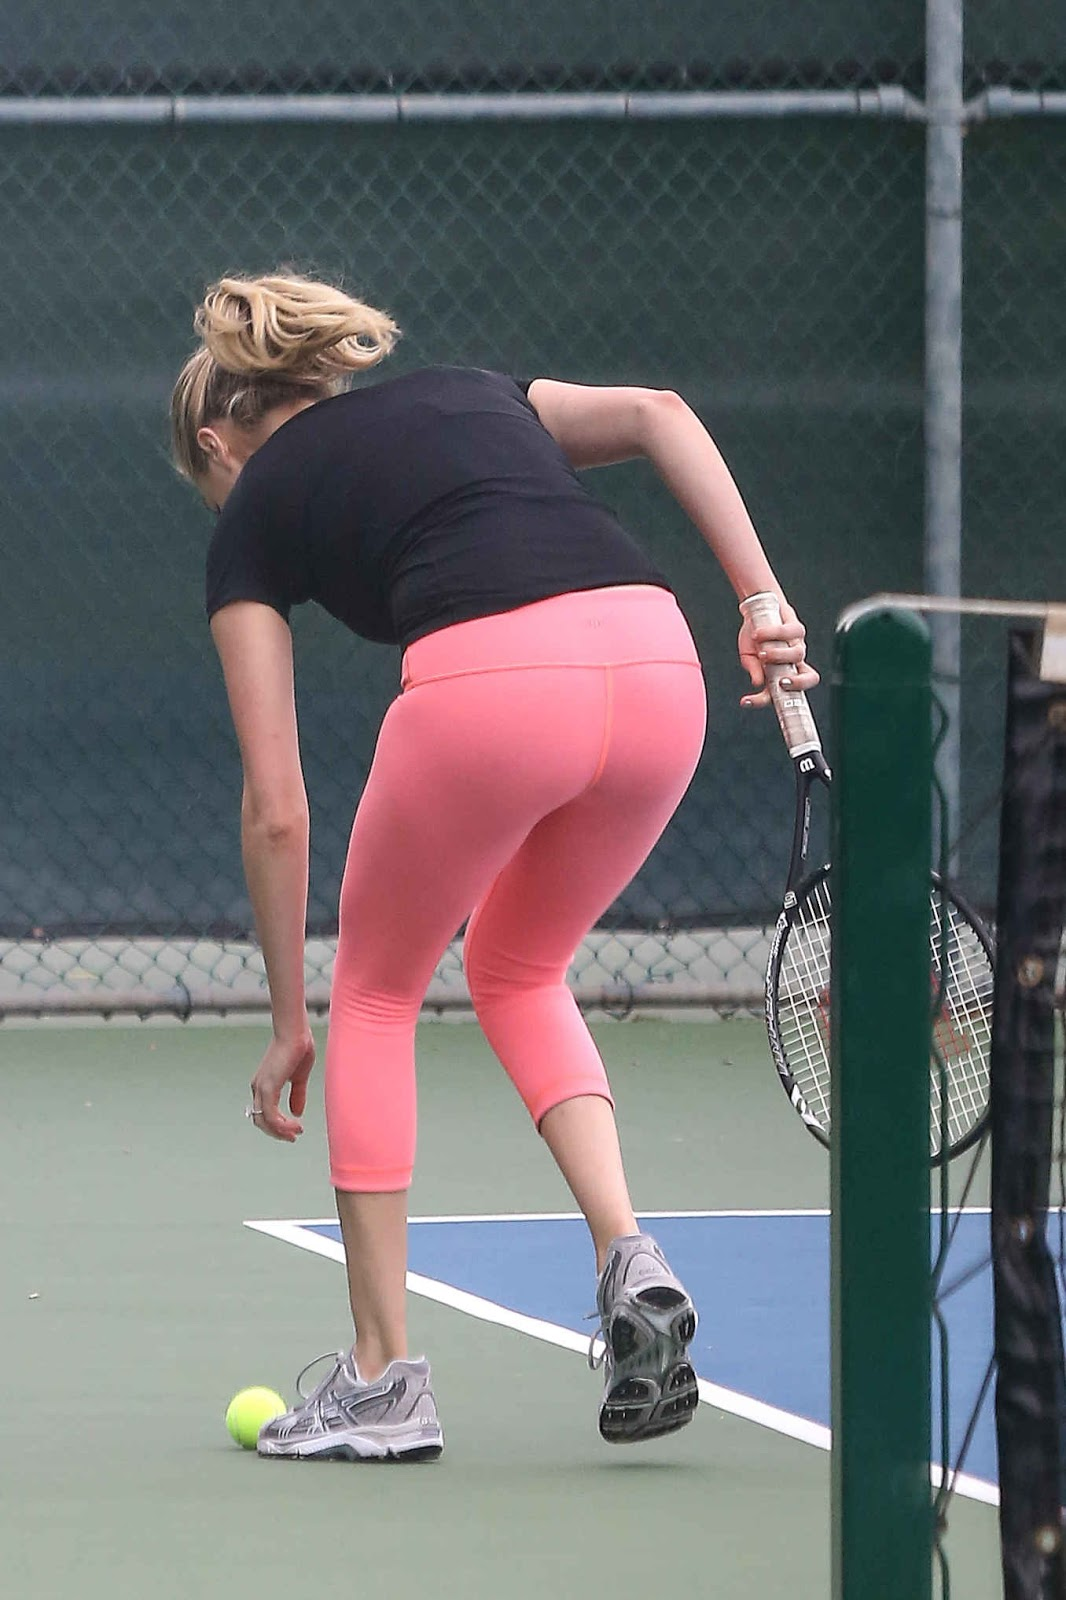 Kate Upton Booty in Tight